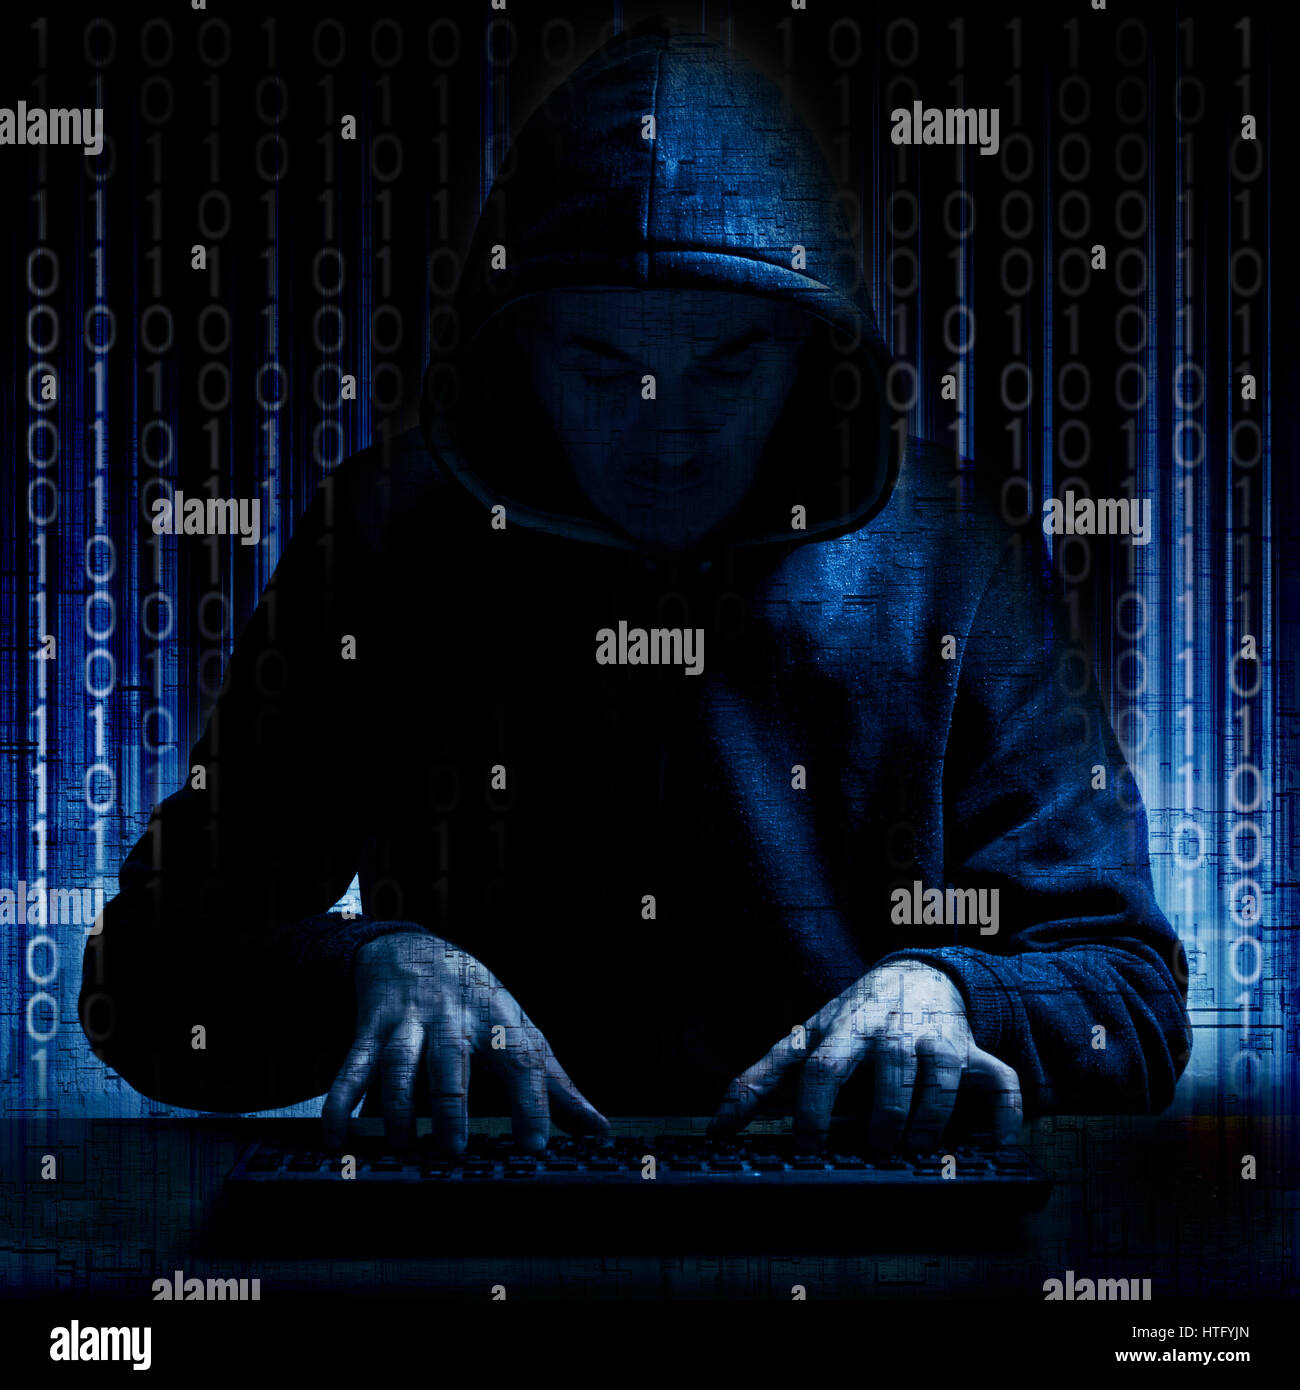 hacker in action - Stock Image